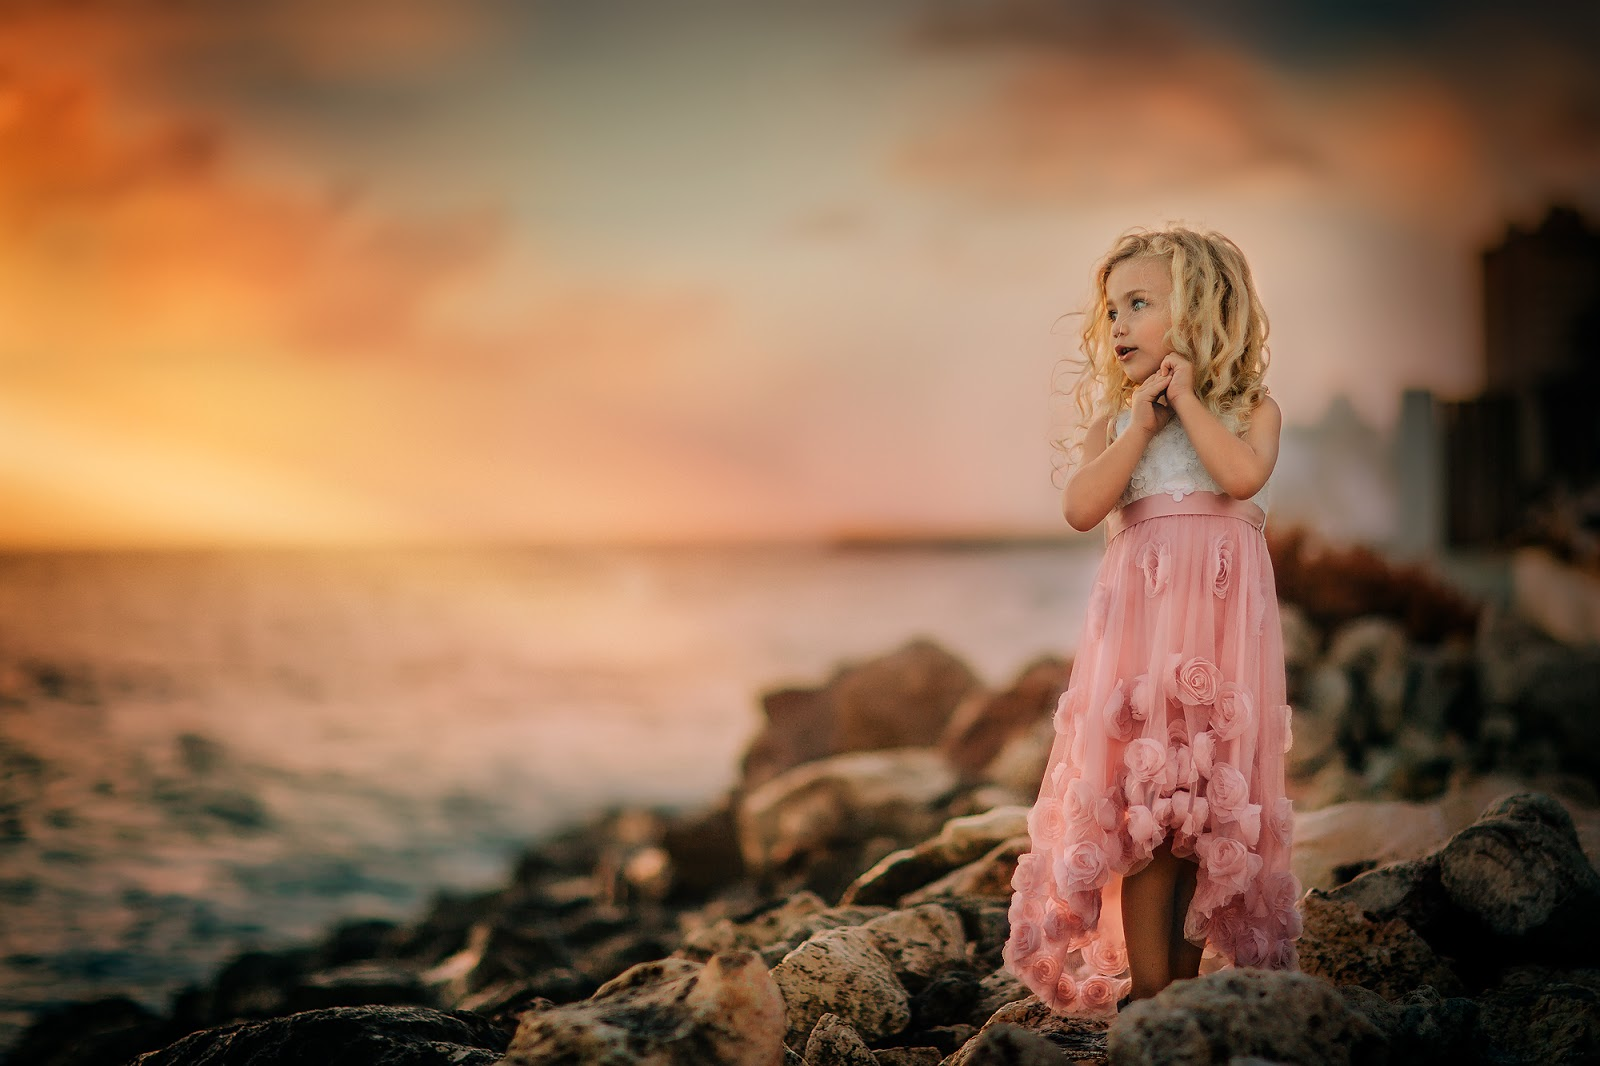 Canon 5D mark III golden hour fine art portrait of a mesmerized little girl in a pink dress watching a beautiful sunset at Pietermaai Beach Curacao by Willie Kers